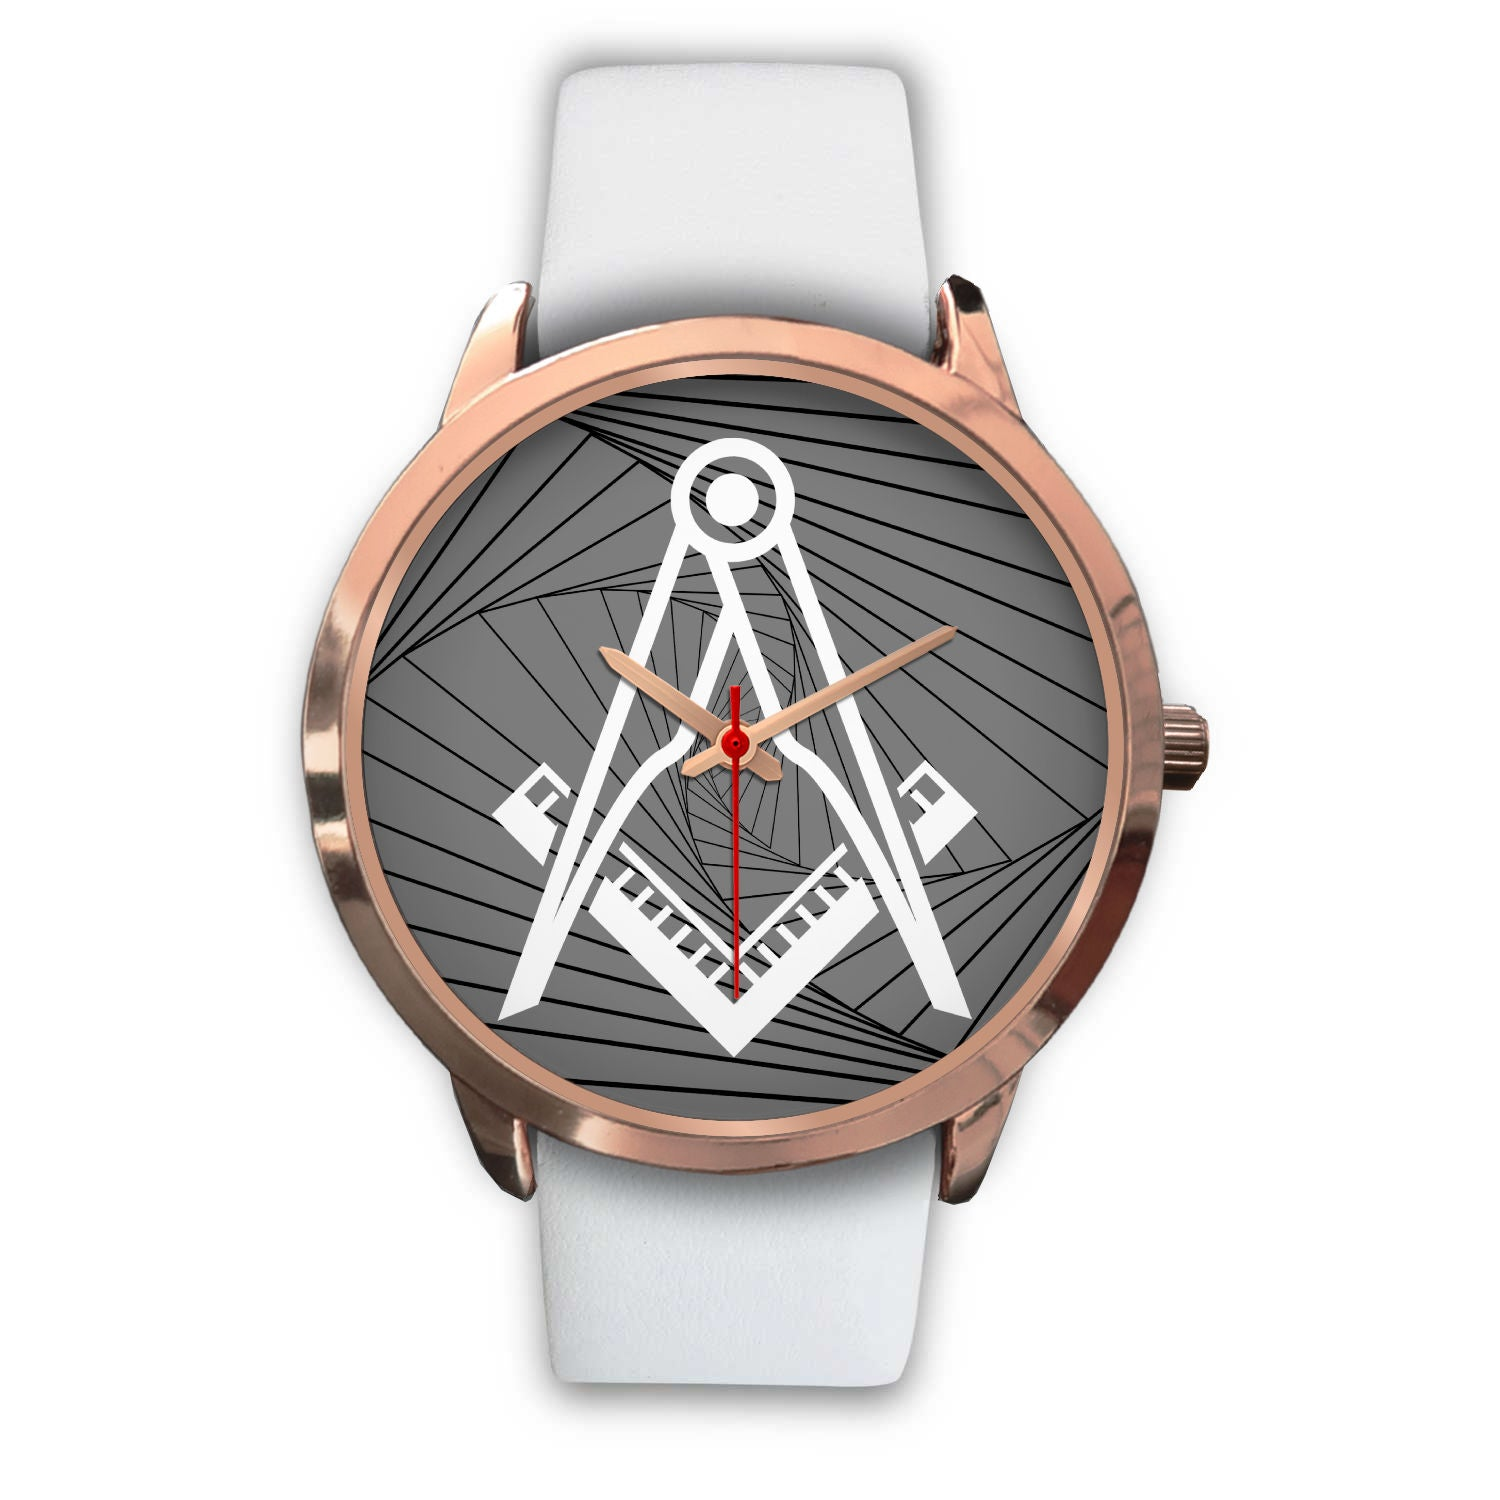 The Masonic Maze Wrist Watch